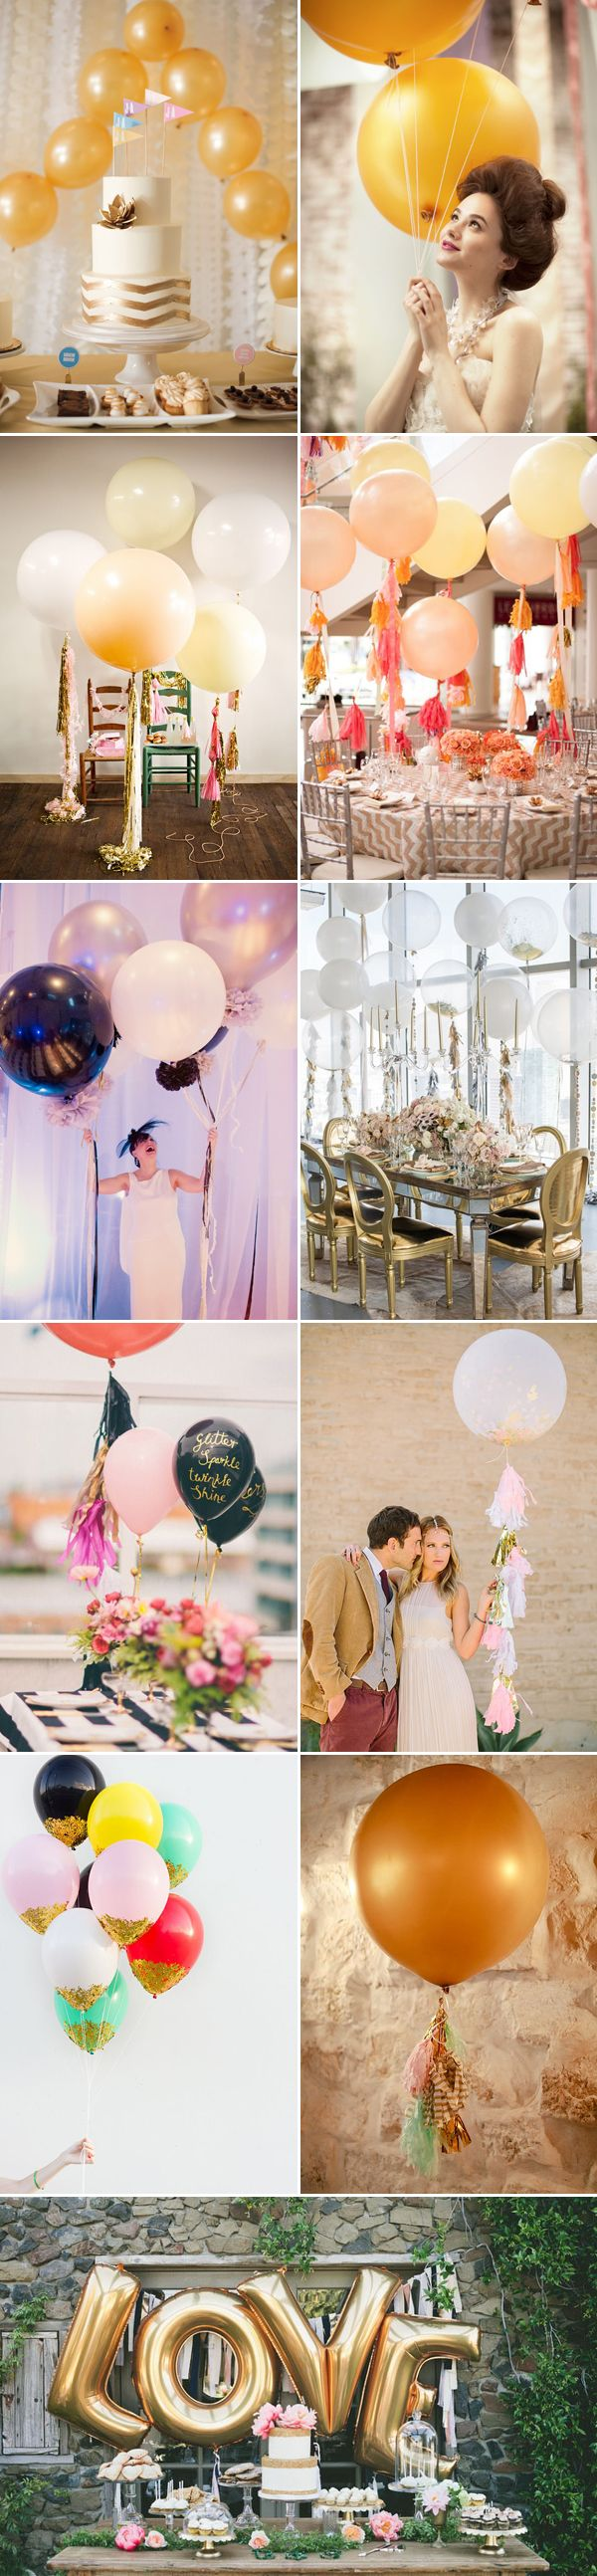 Affordable & Adorble – 36 Balloon Decor Ideas